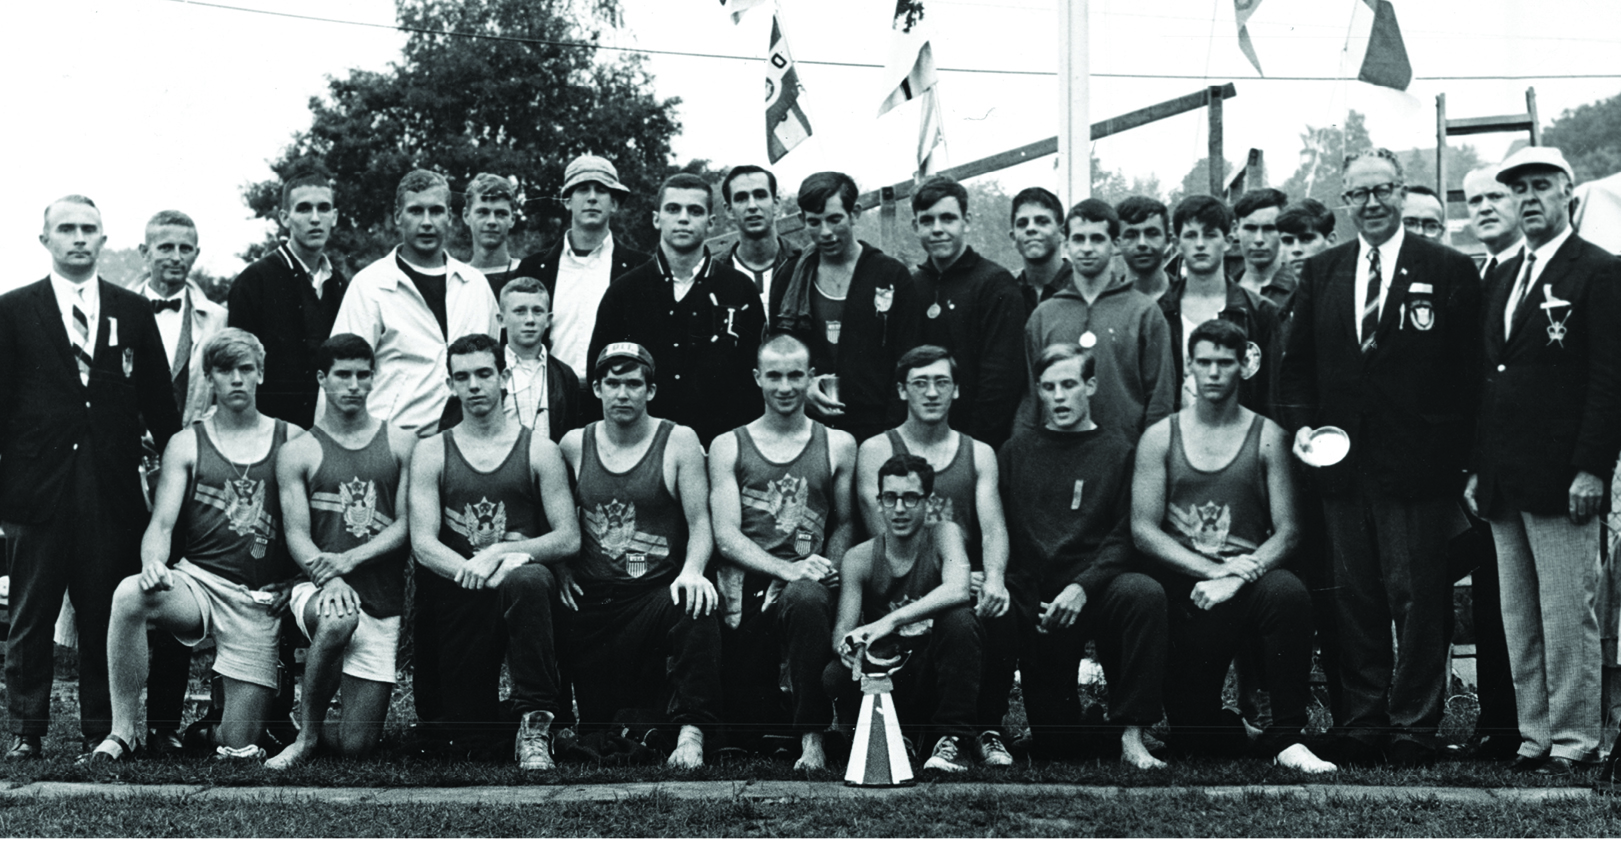 Mike Cipollone and the 1967 US Junior Men's team (Mike is with the bullhorn)